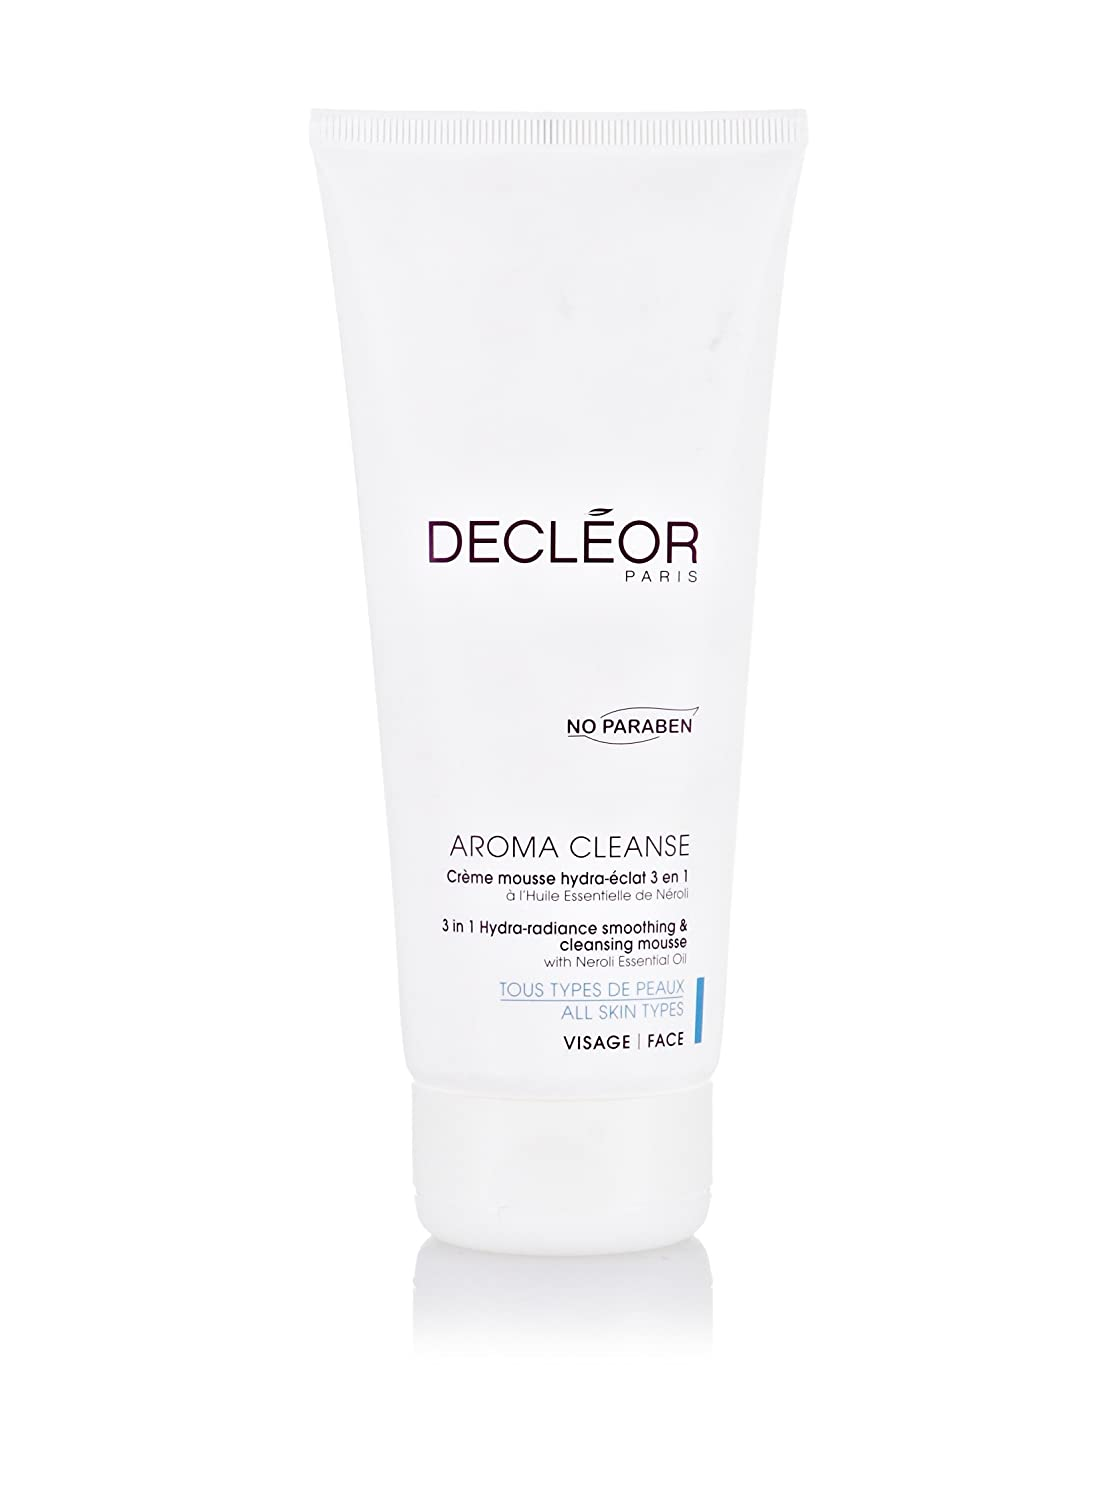 Decleor Aroma Cleanse 3-In-1 Hydra-Radiance Smoothing and Cleansing Mousse, 6.7 Ounce Mainspring America Inc. DBA Direct Cosmetics DEC90136 40928